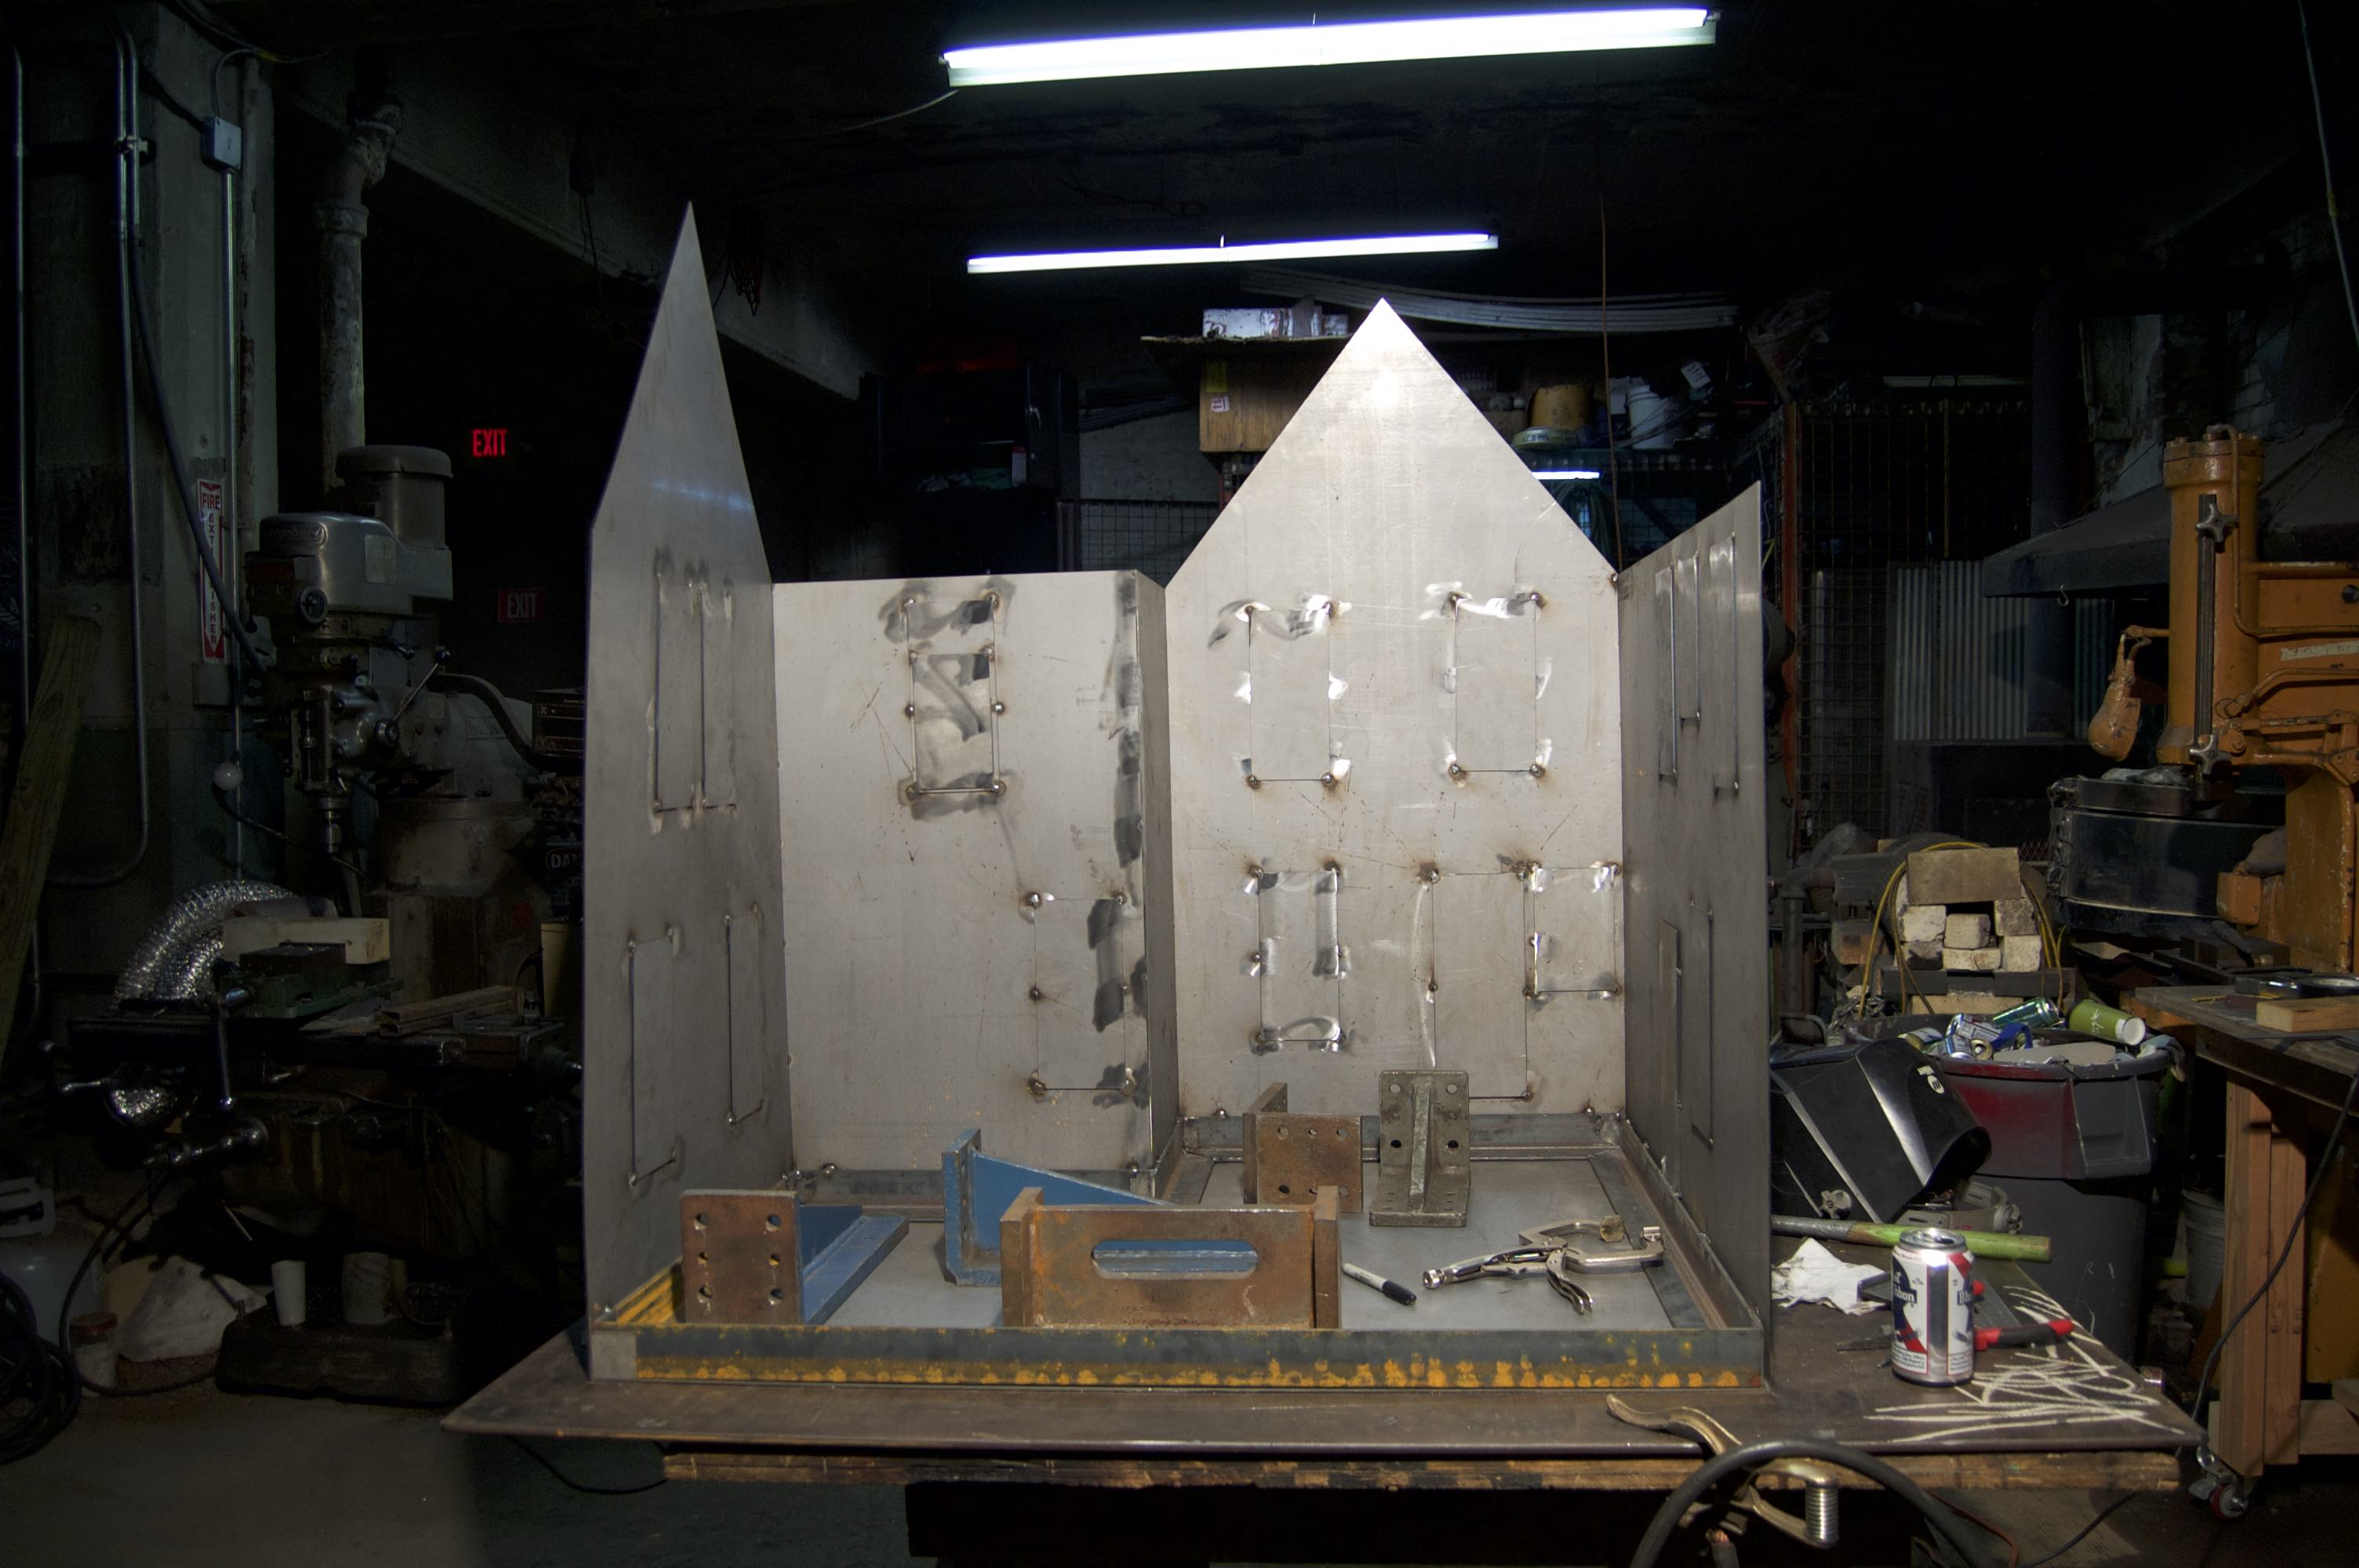 A view, in-process, from the inside